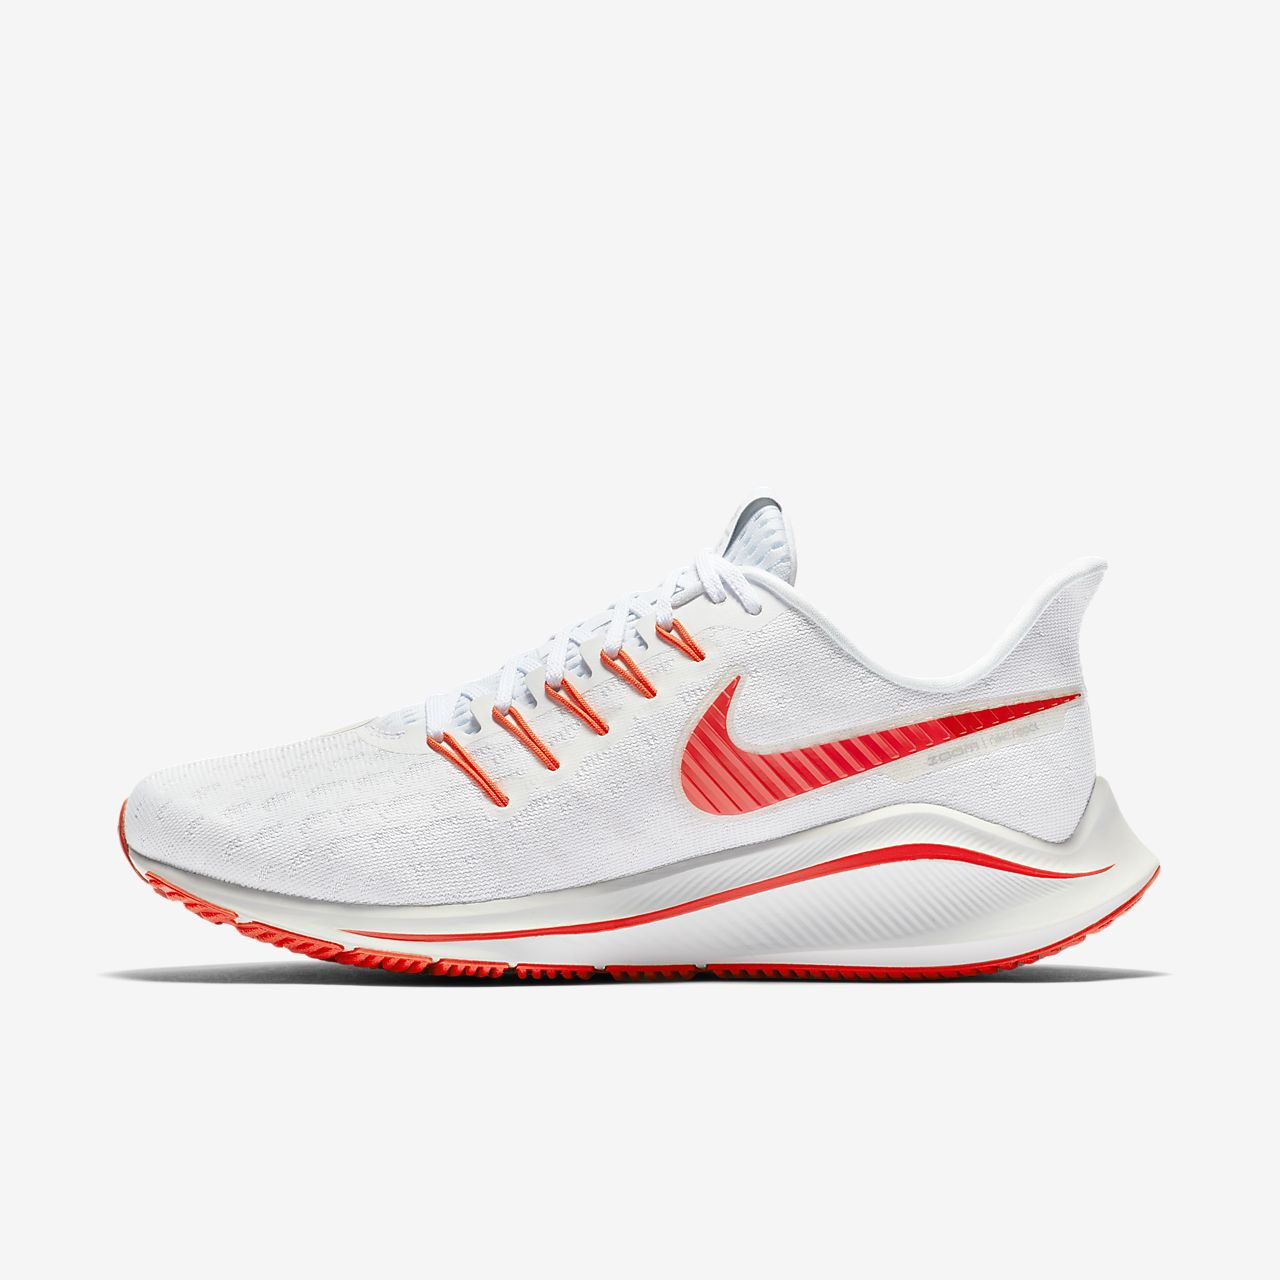 AH7858 Nike Air Zoom Vomero 14